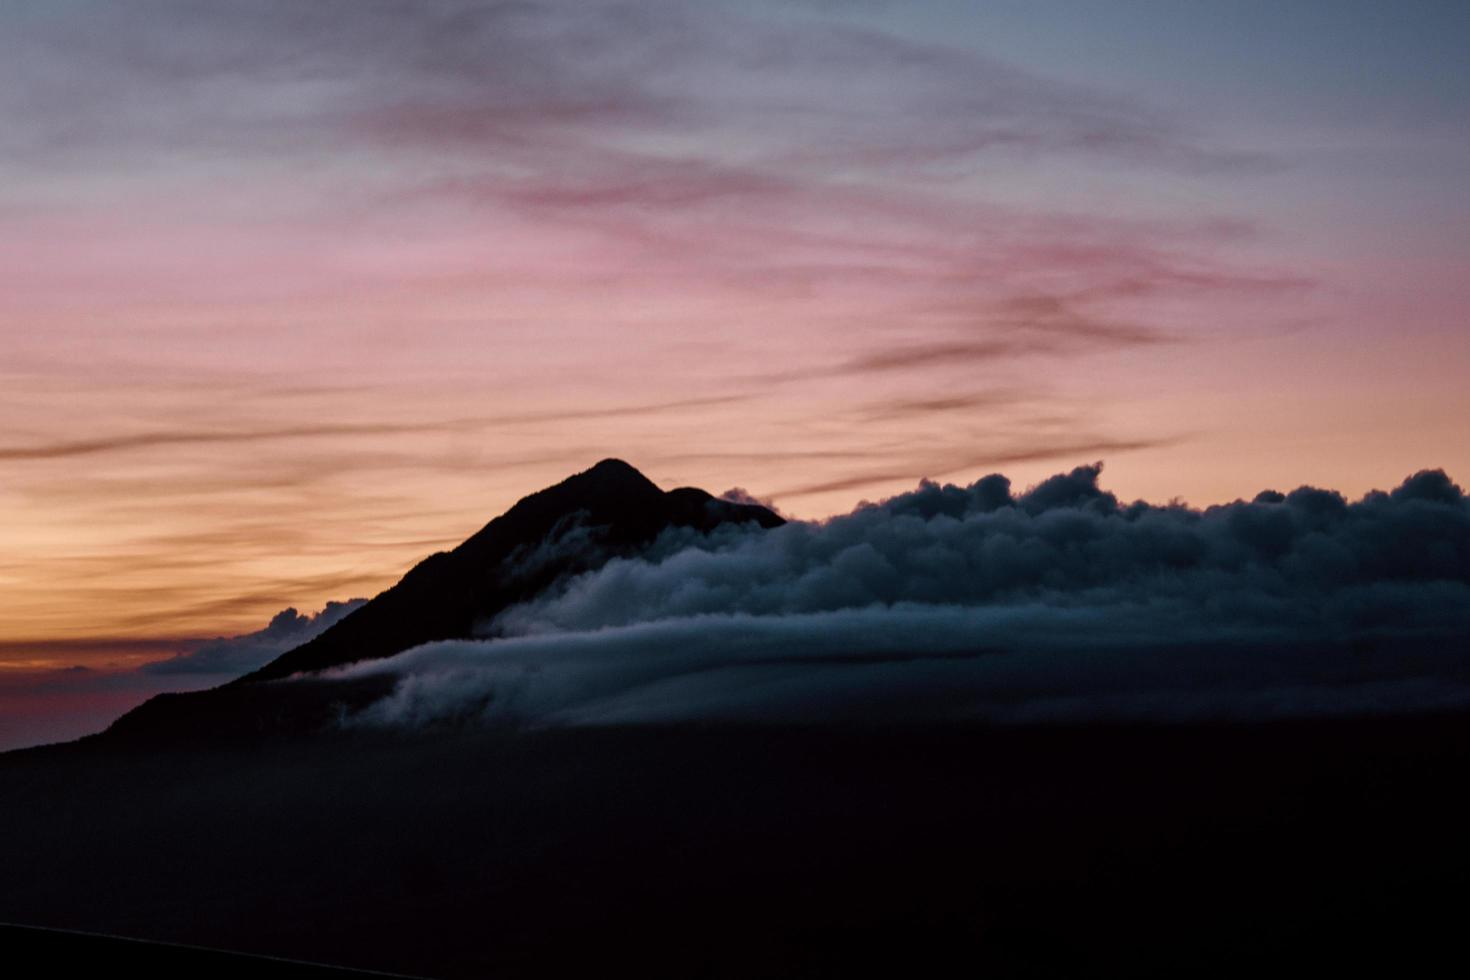 Clouds covering a mountain photo